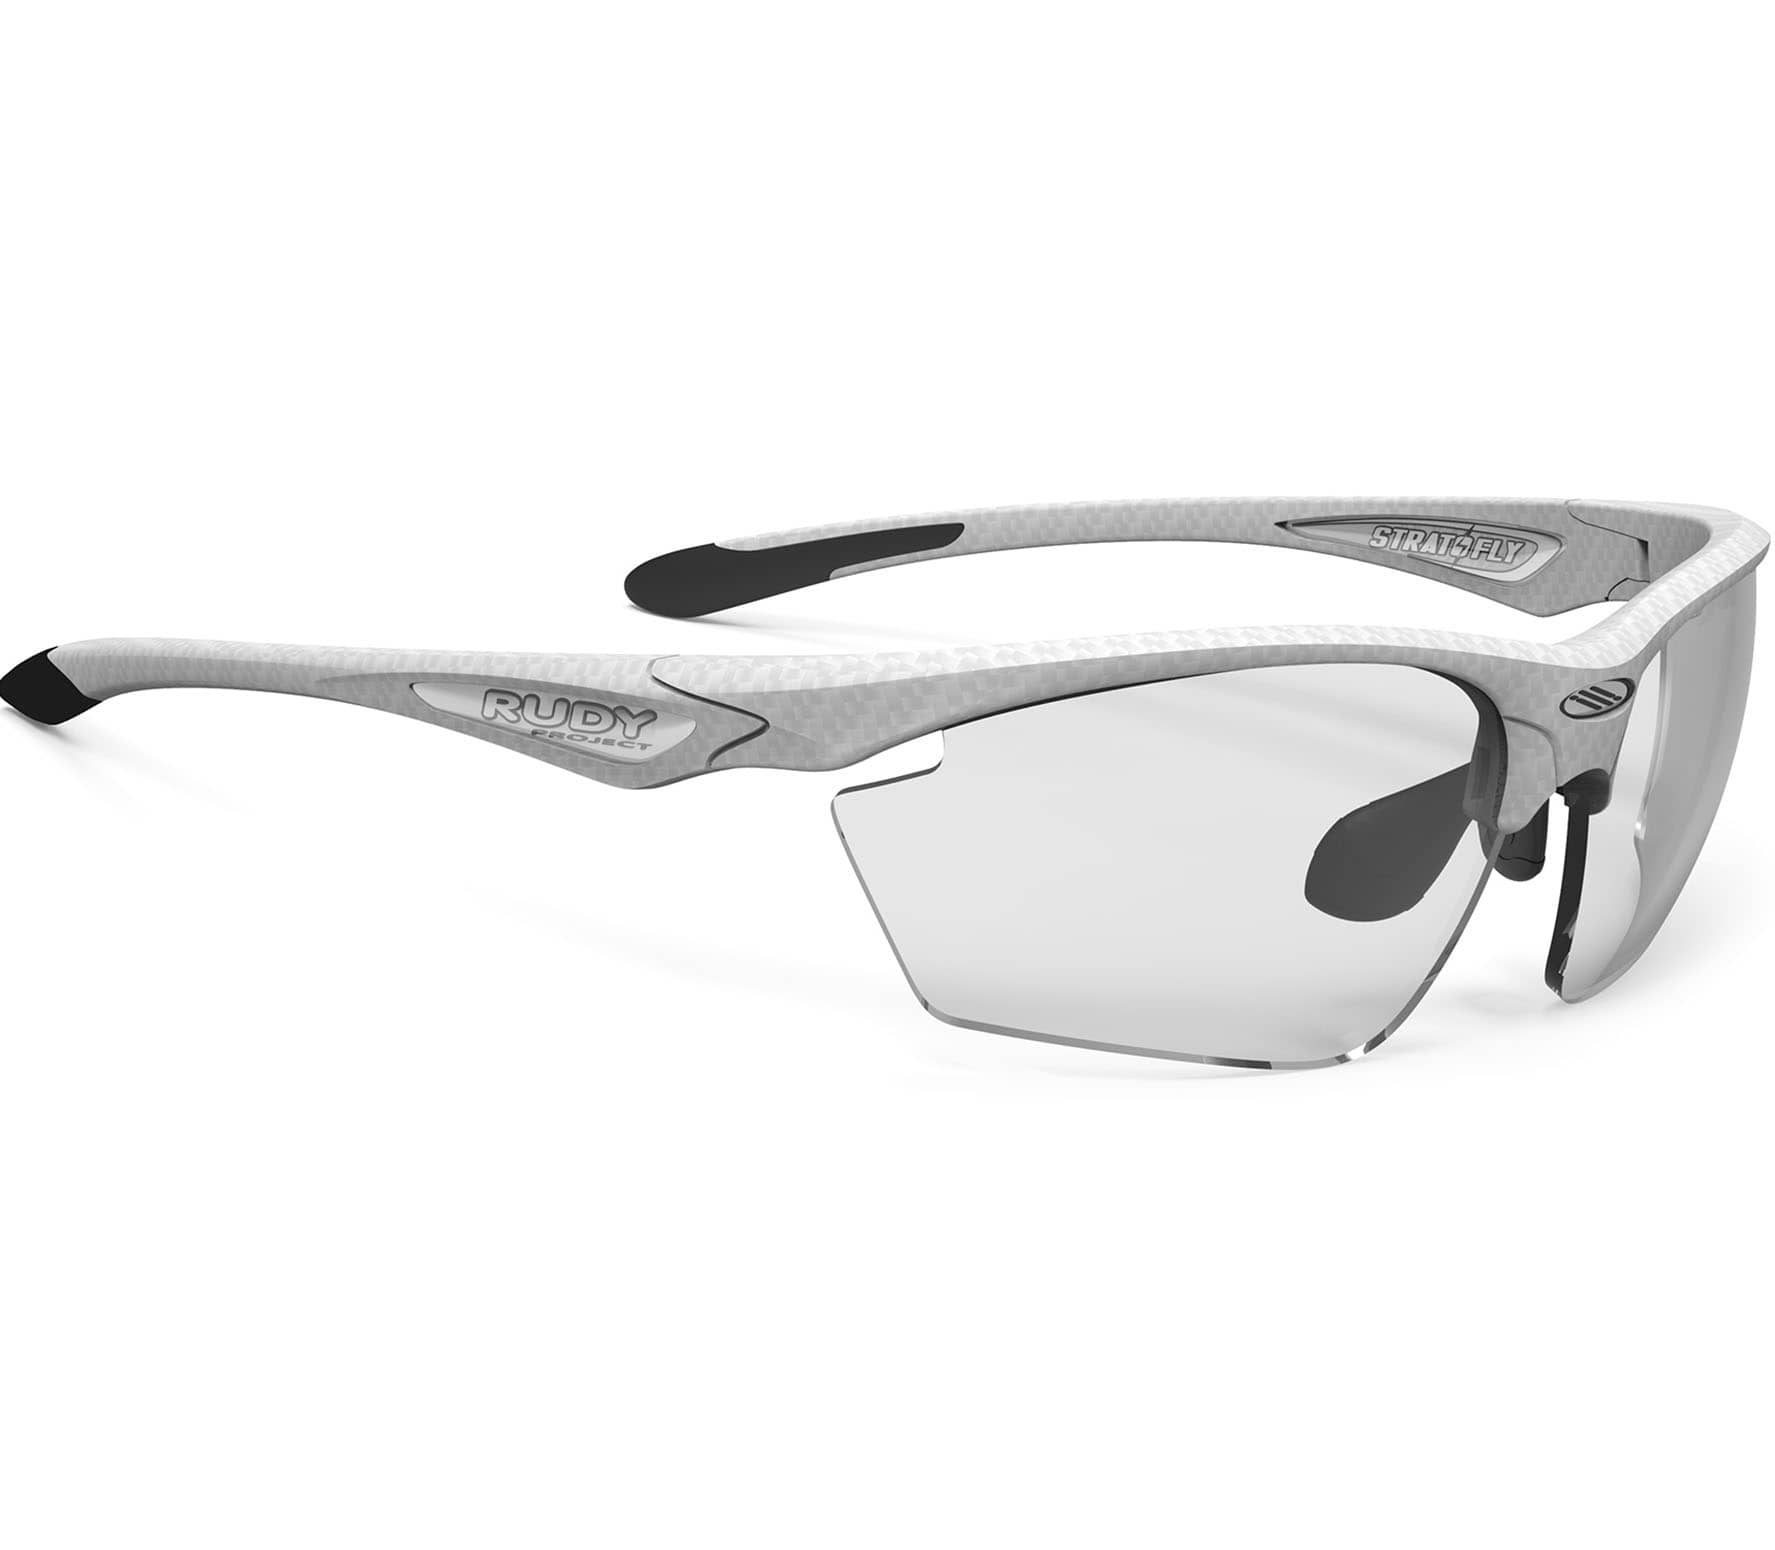 acbe88c70b Rudy Project - Stratofly Bike glasses (white) - buy it at the Keller ...